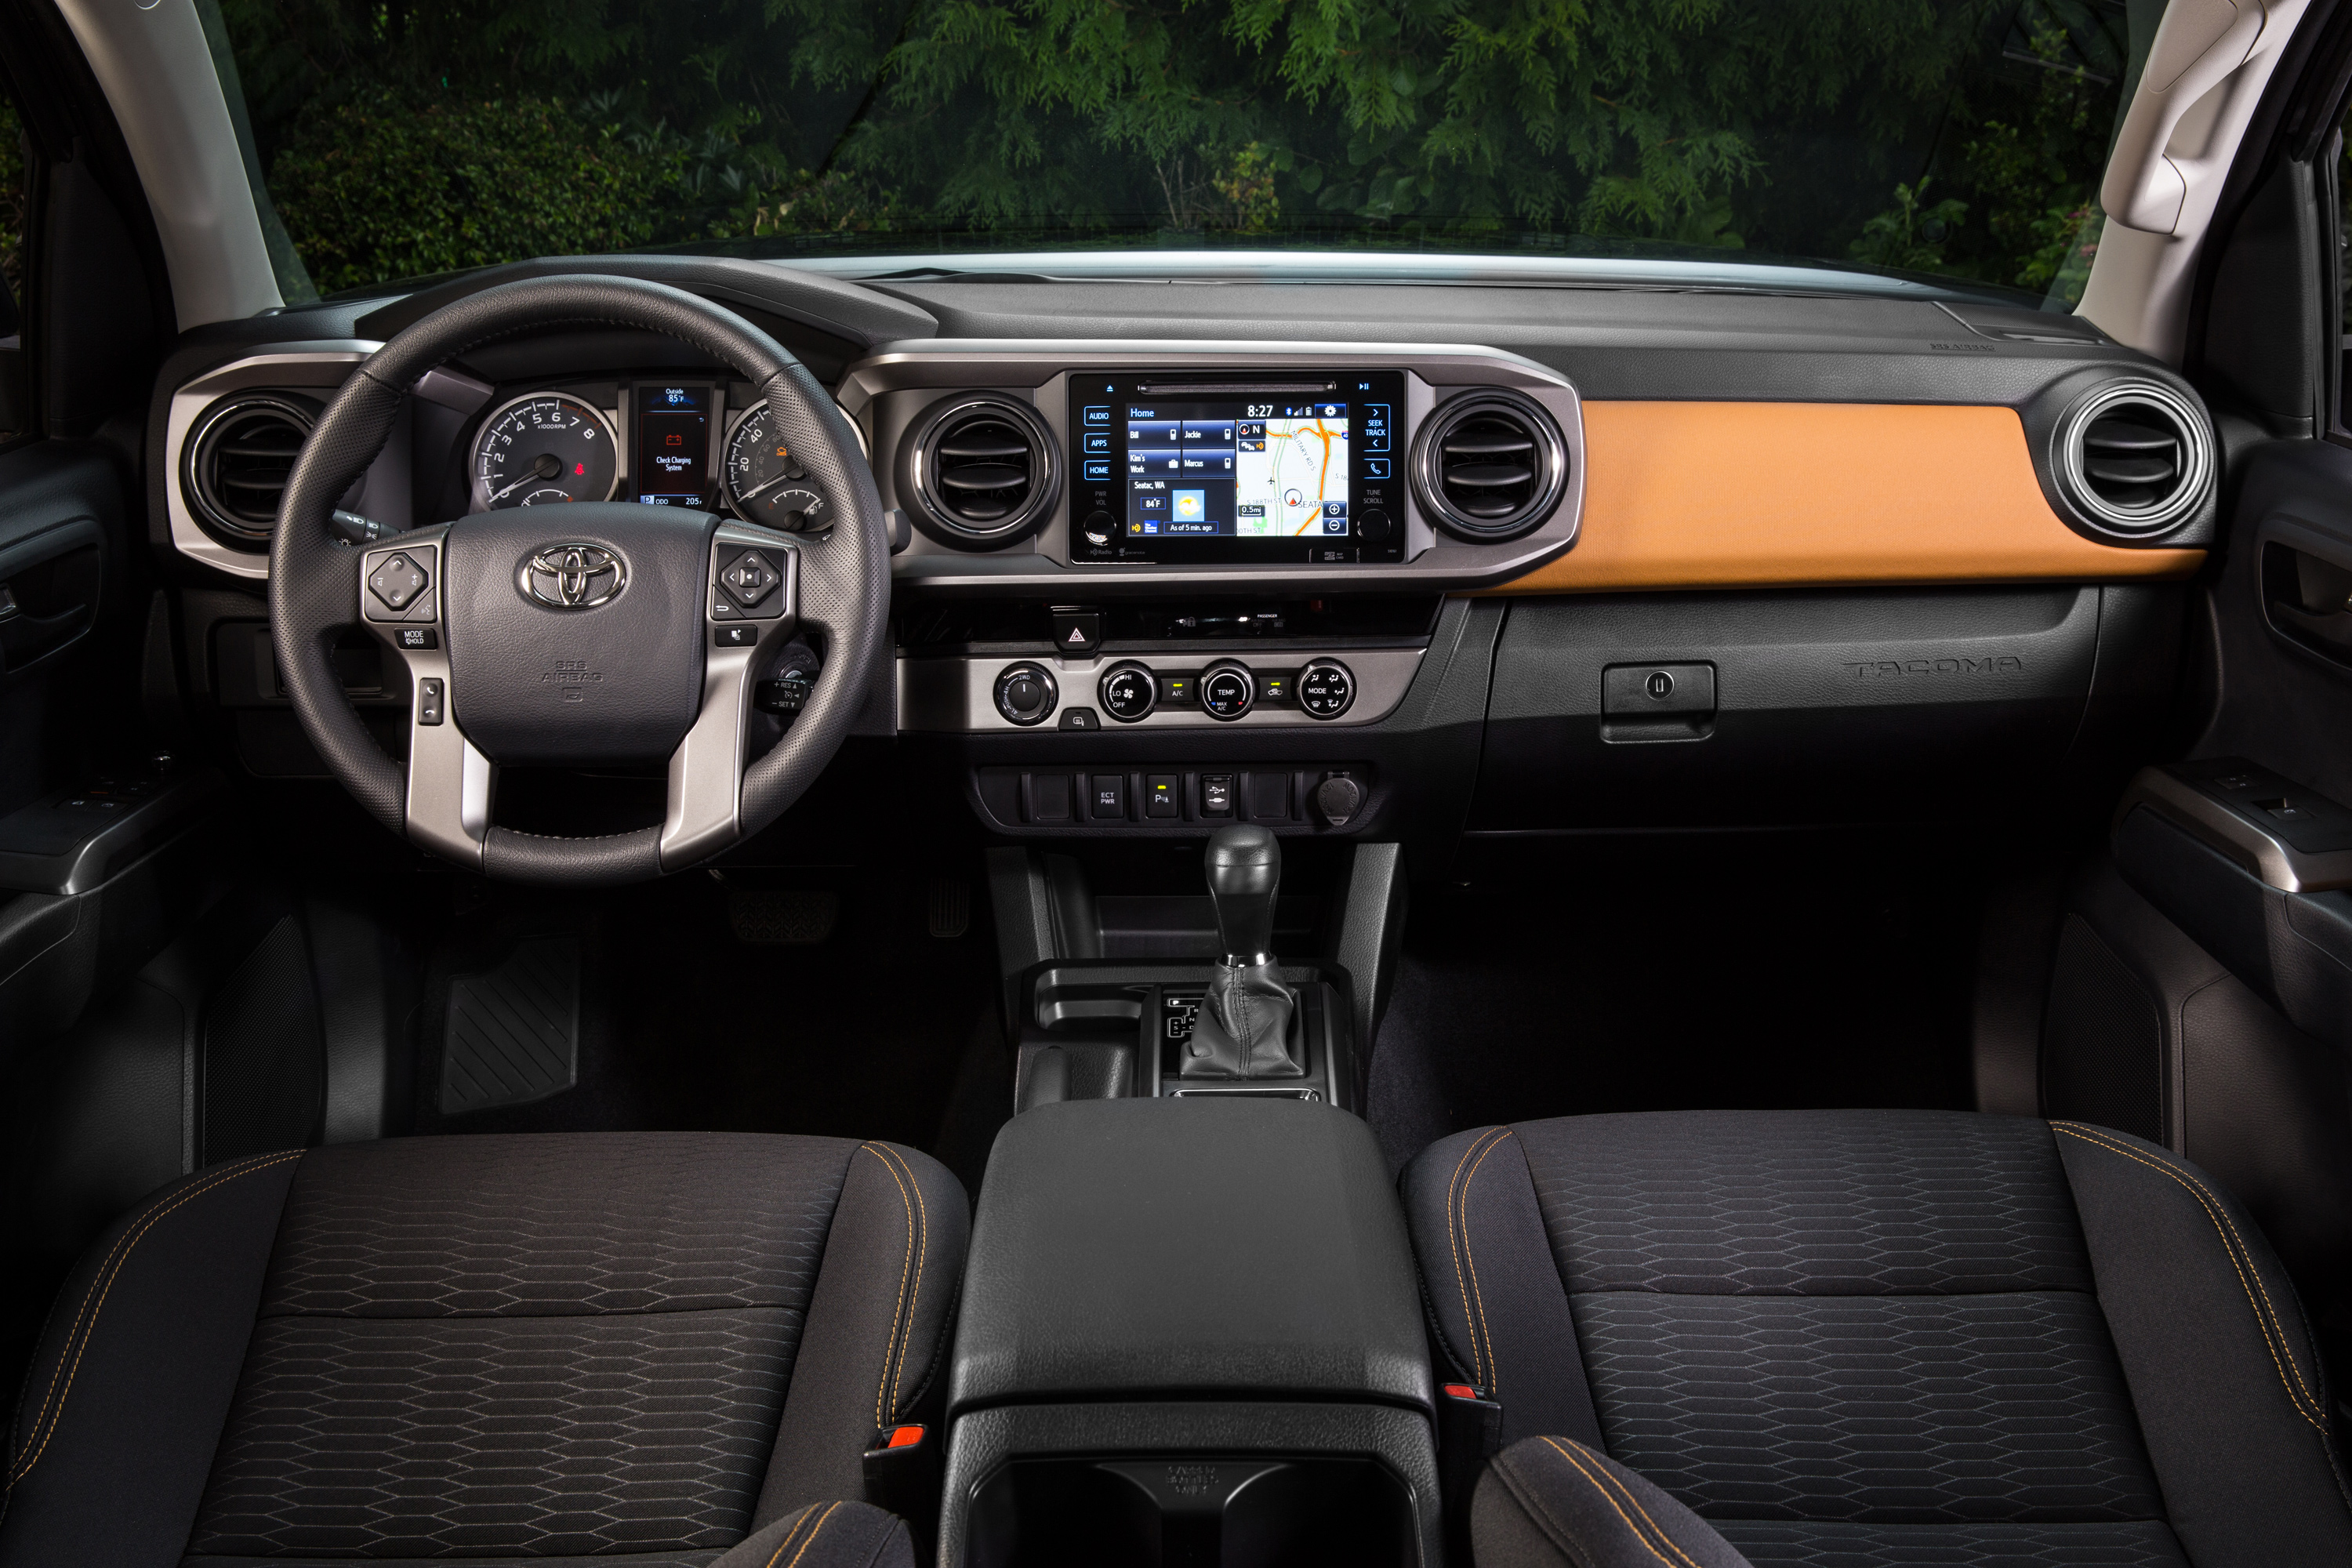 The interior of the 2018 Toyota Tacoma may seem dated but functionally it's pretty unbeatable.